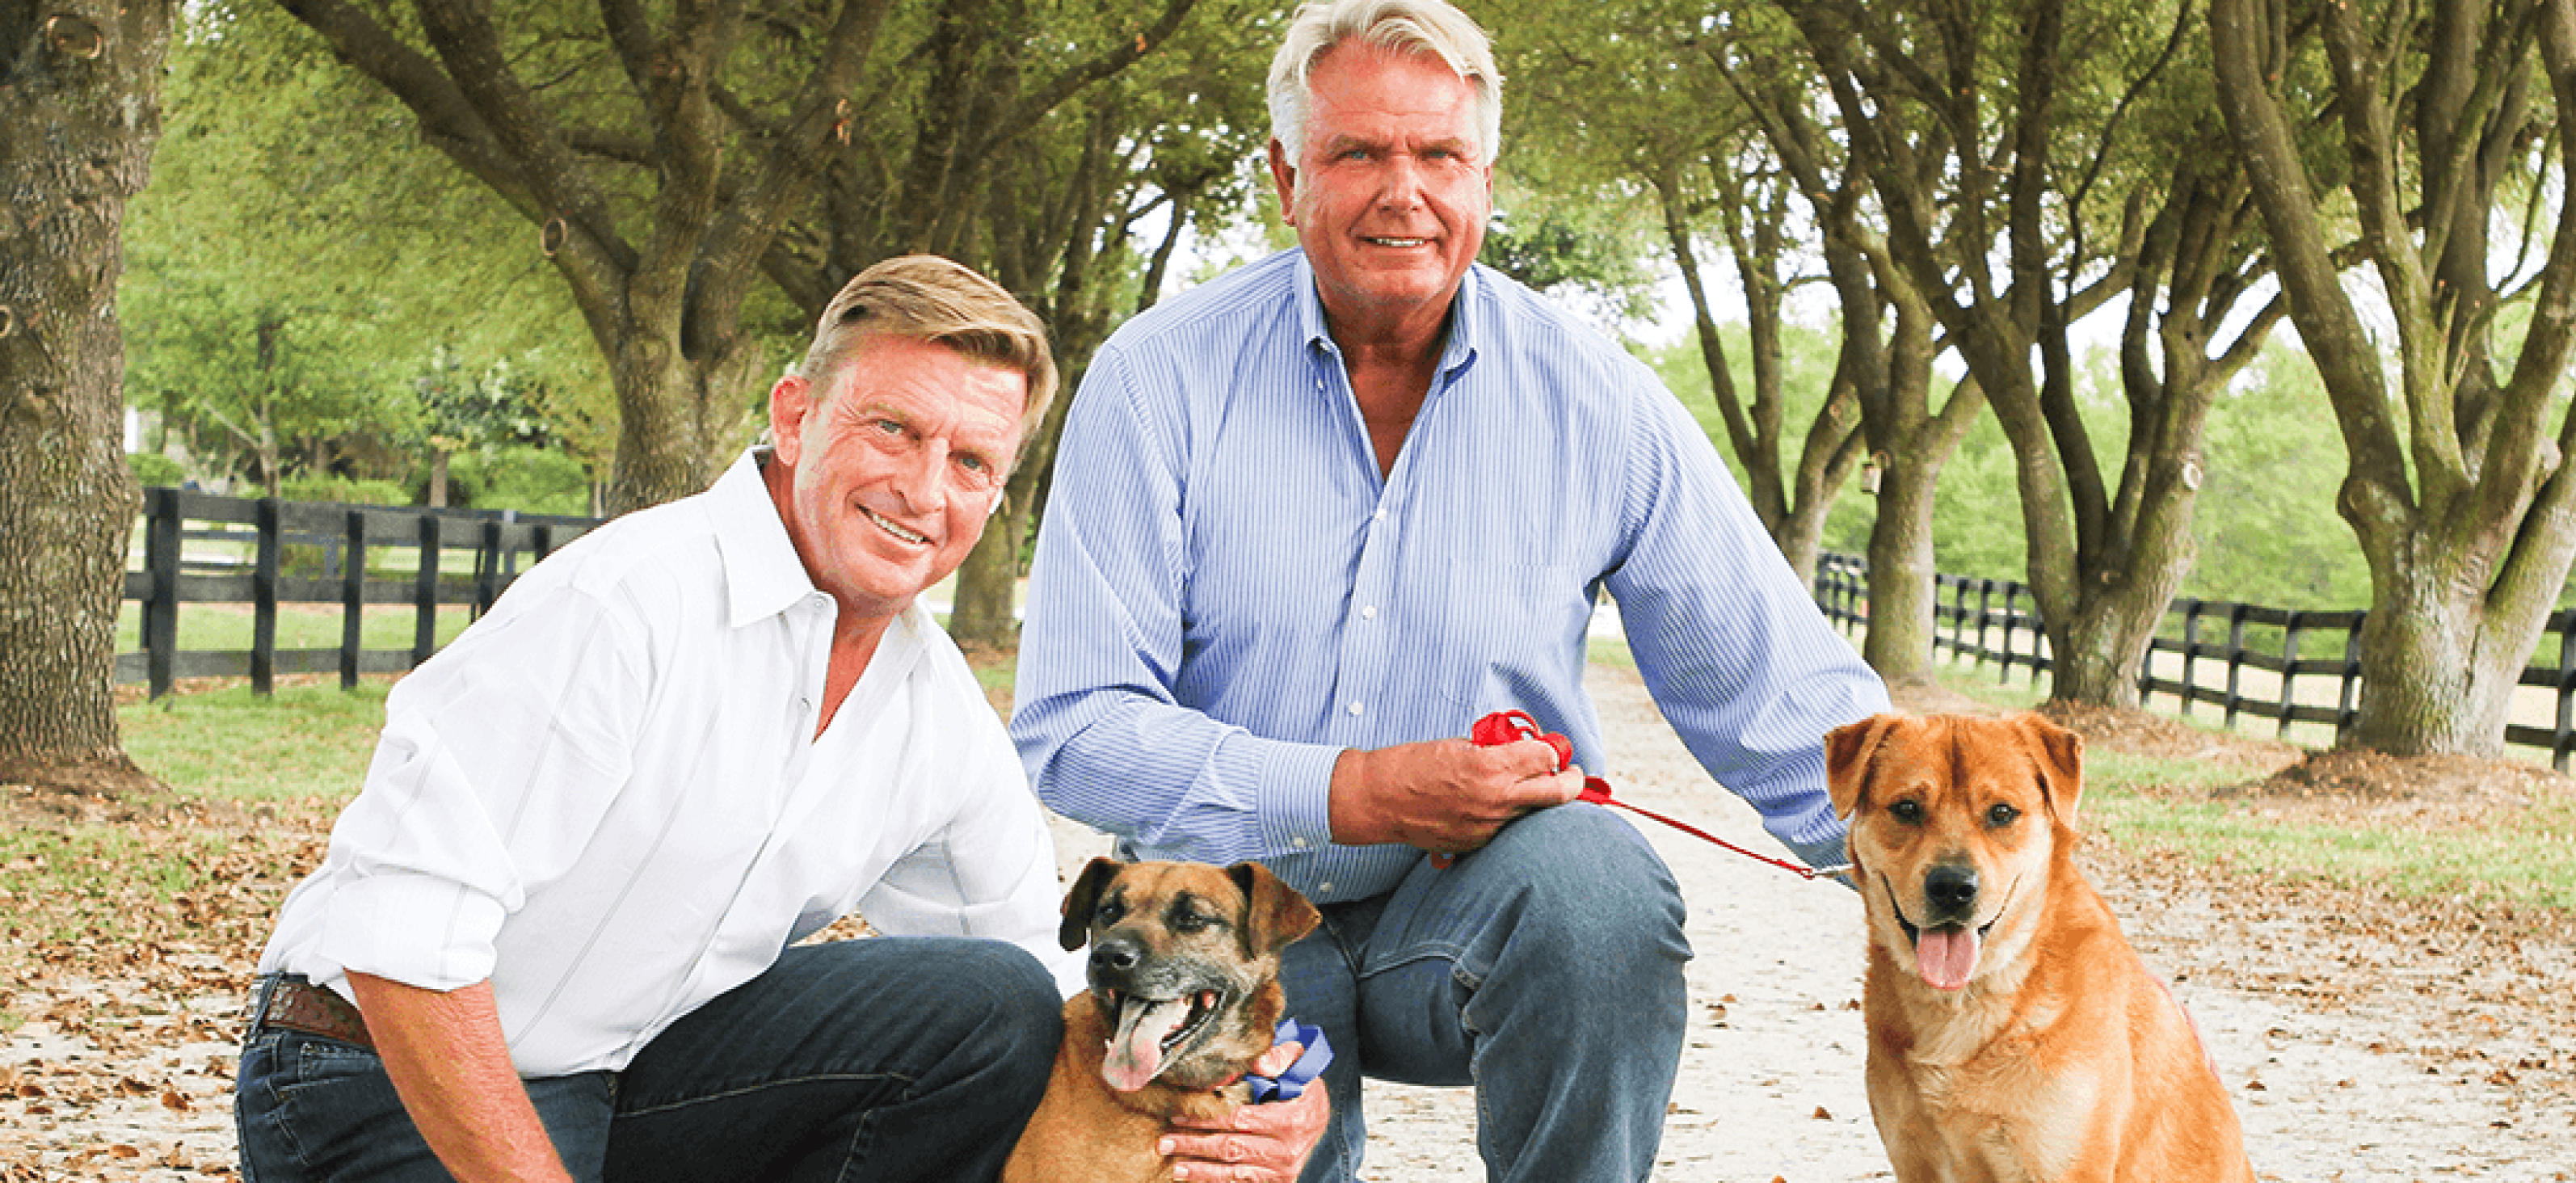 donate to Danny and Ron's Animal Rescue for free with your everyday purchases